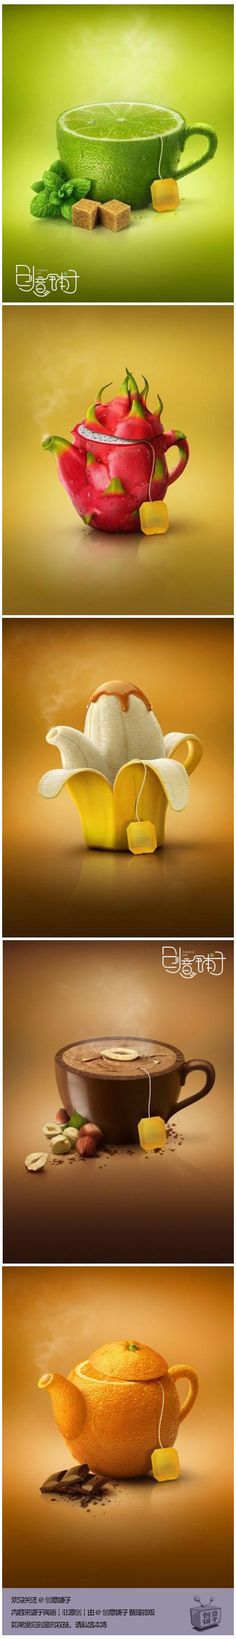 #Print #Ads for flavored tea